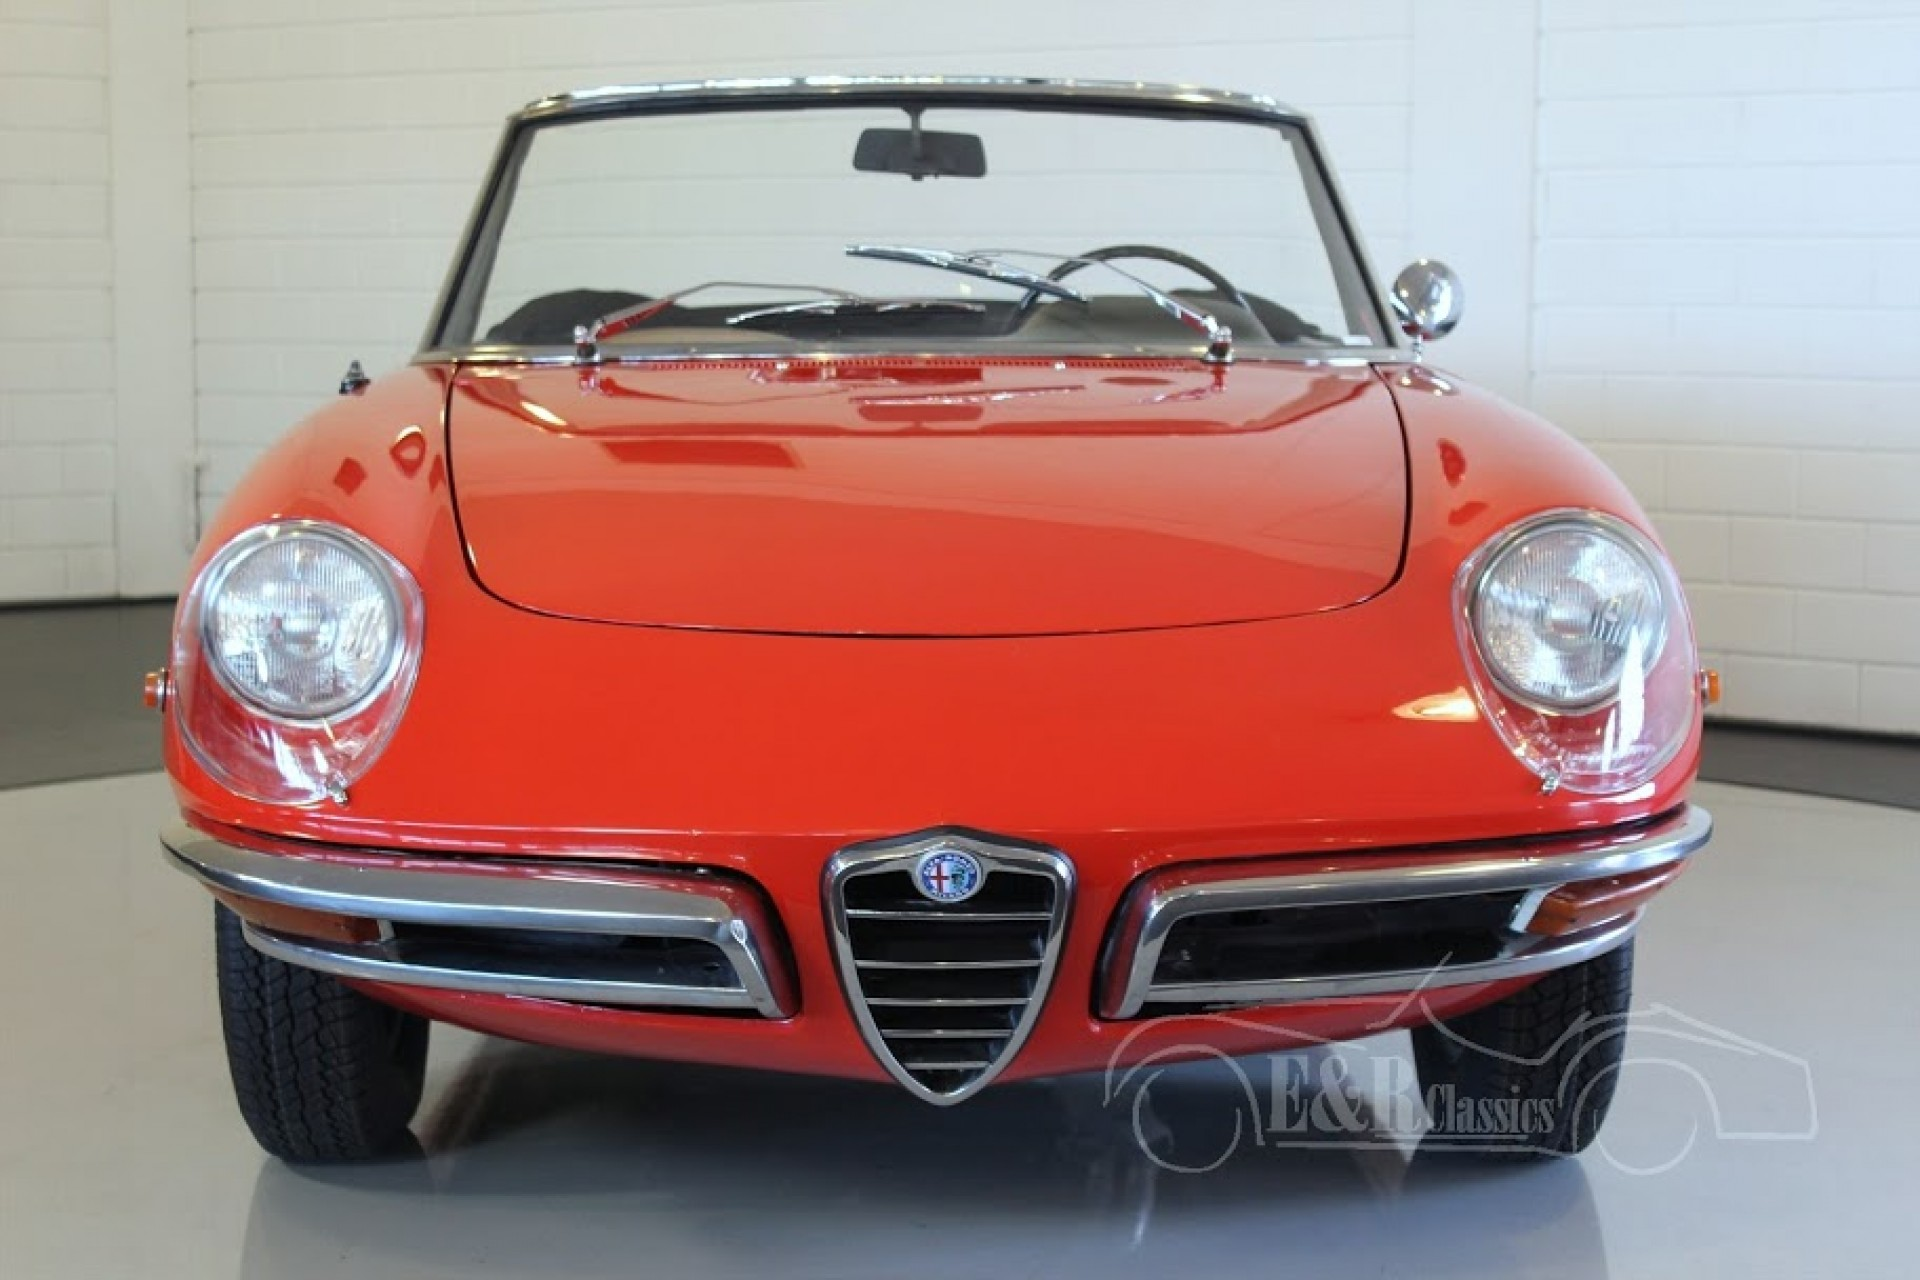 duetto spider classic cars | duetto spider oldtimers for  at e